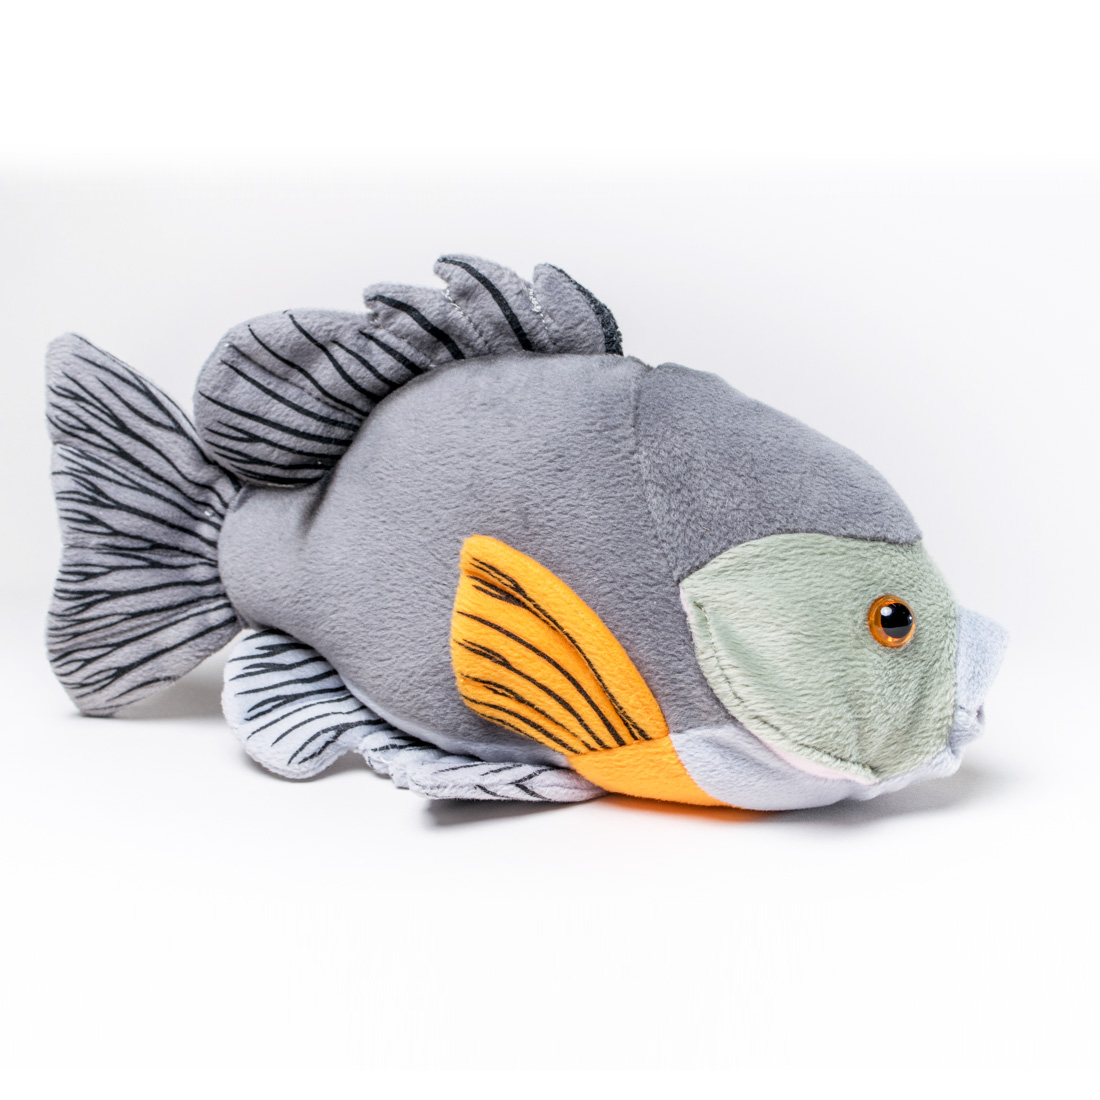 attachment-https://urbanislander.co.jp/wp-content/uploads/2016/05/ProductShots_bluegill2.jpg